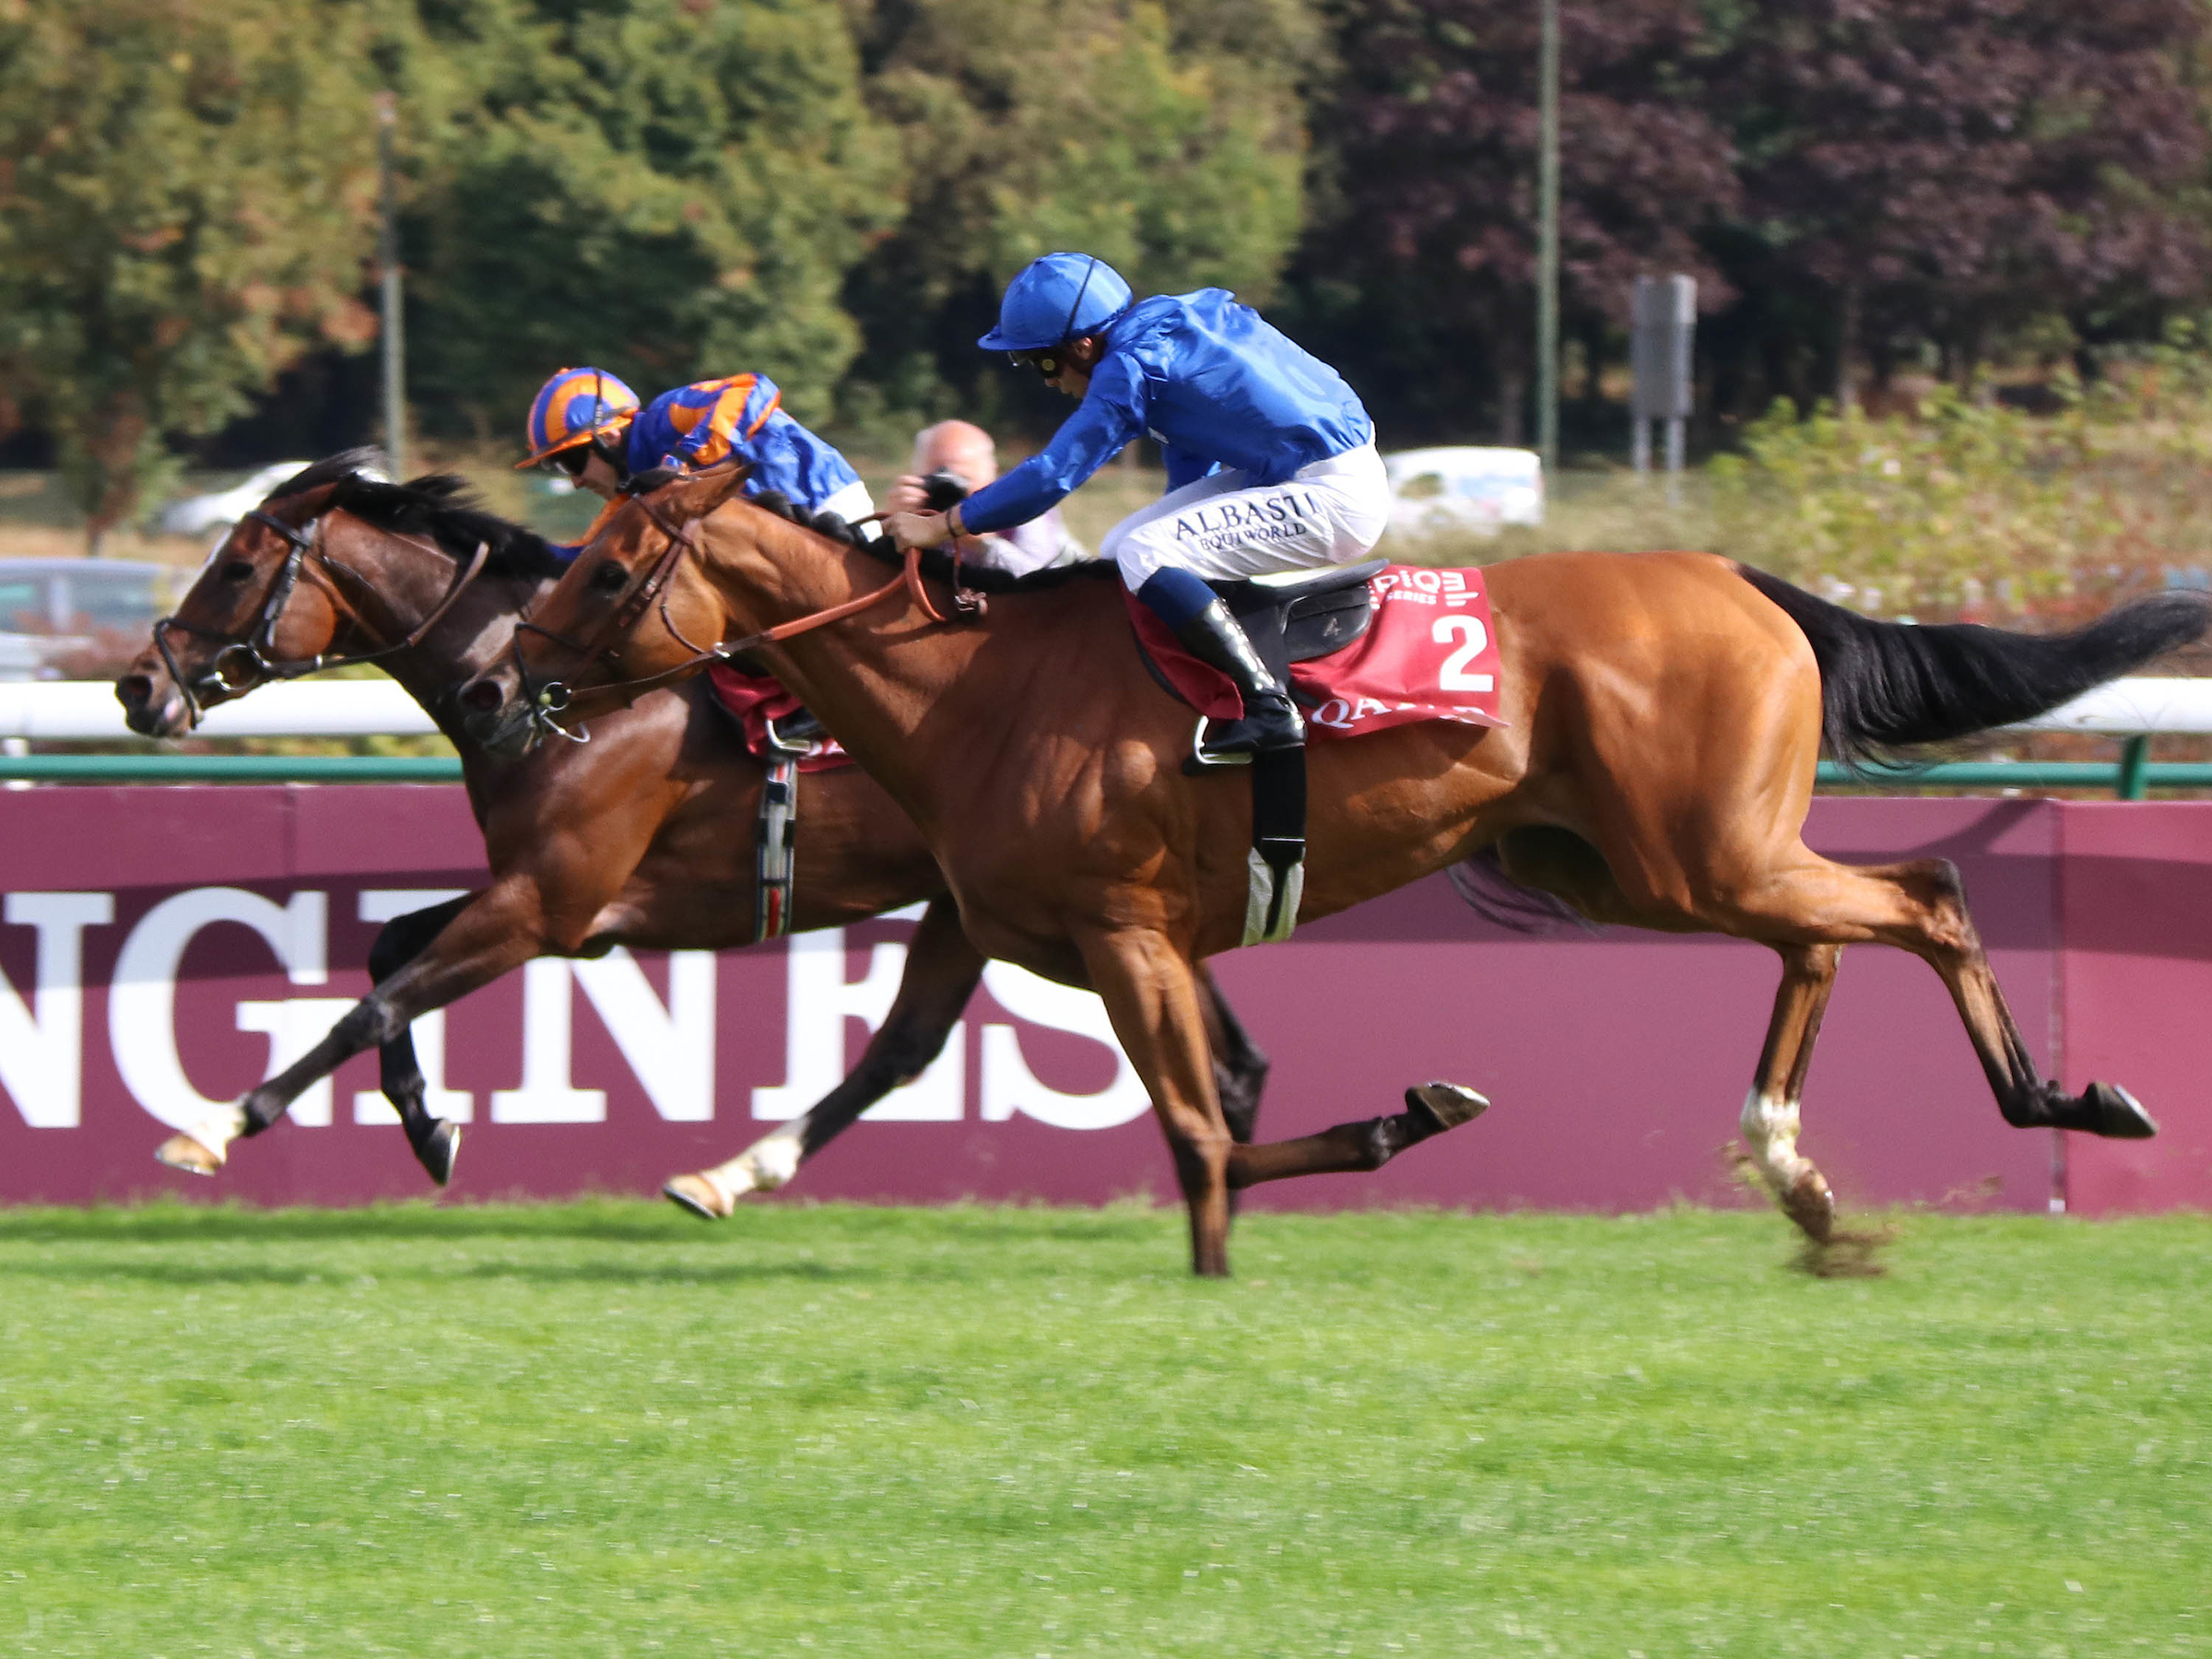 Kitesurf is about to overhaul Magic Wand in the Prix Vermeille. (Focusonracing)